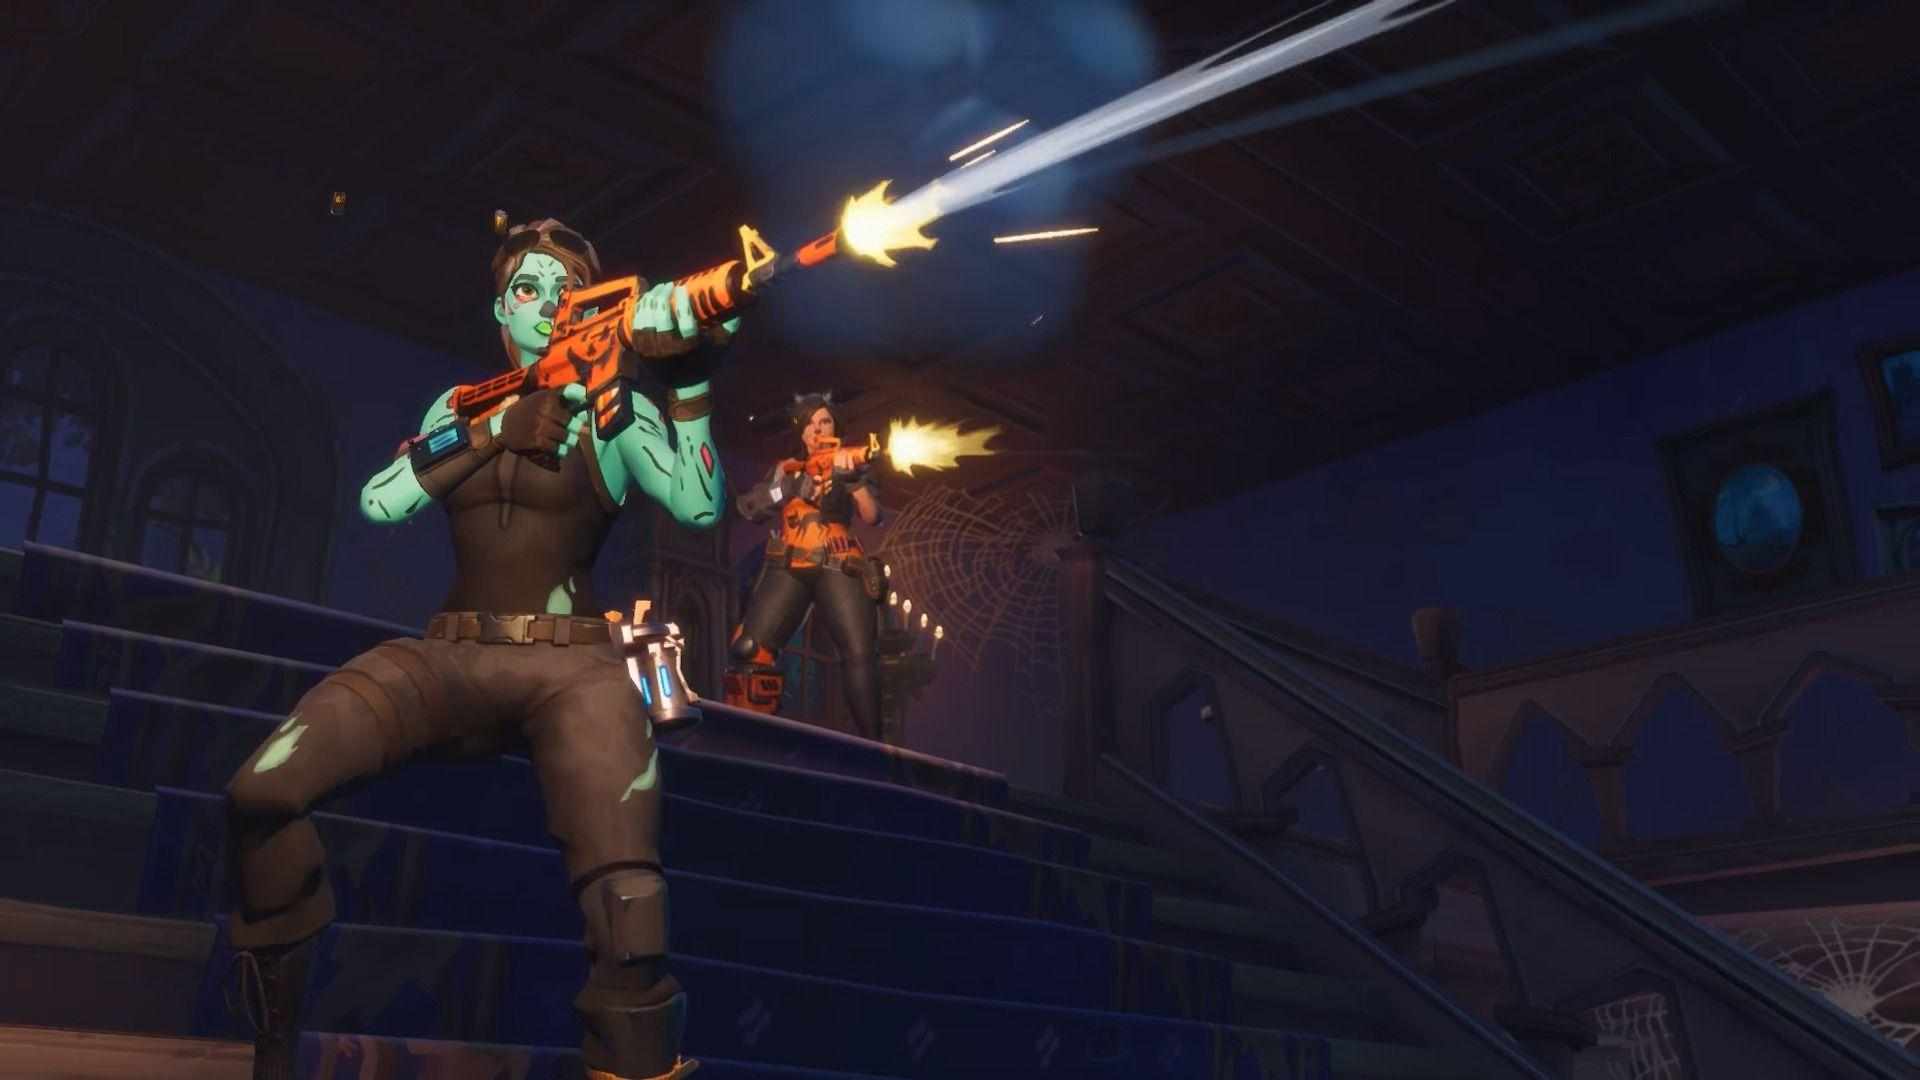 Fortnite: How To Complete Fortnitemares Challenges